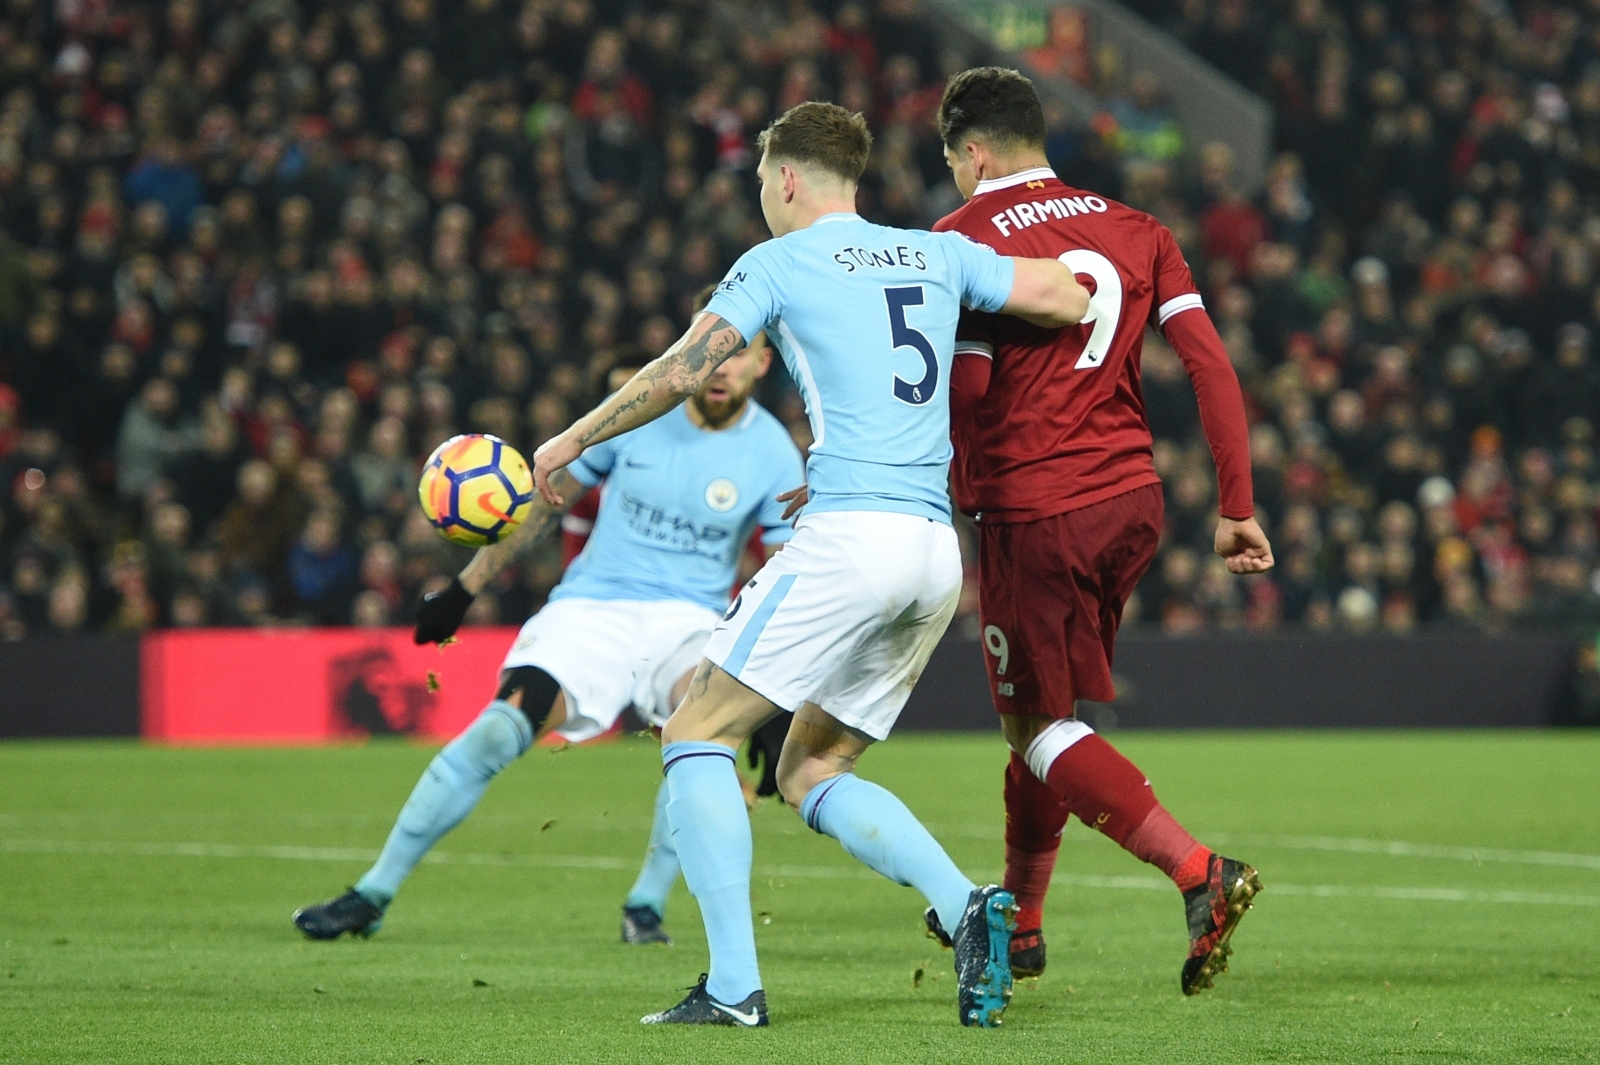 Liverpool Beats Manchester City, Dealing Blow to Its Invincible Aura